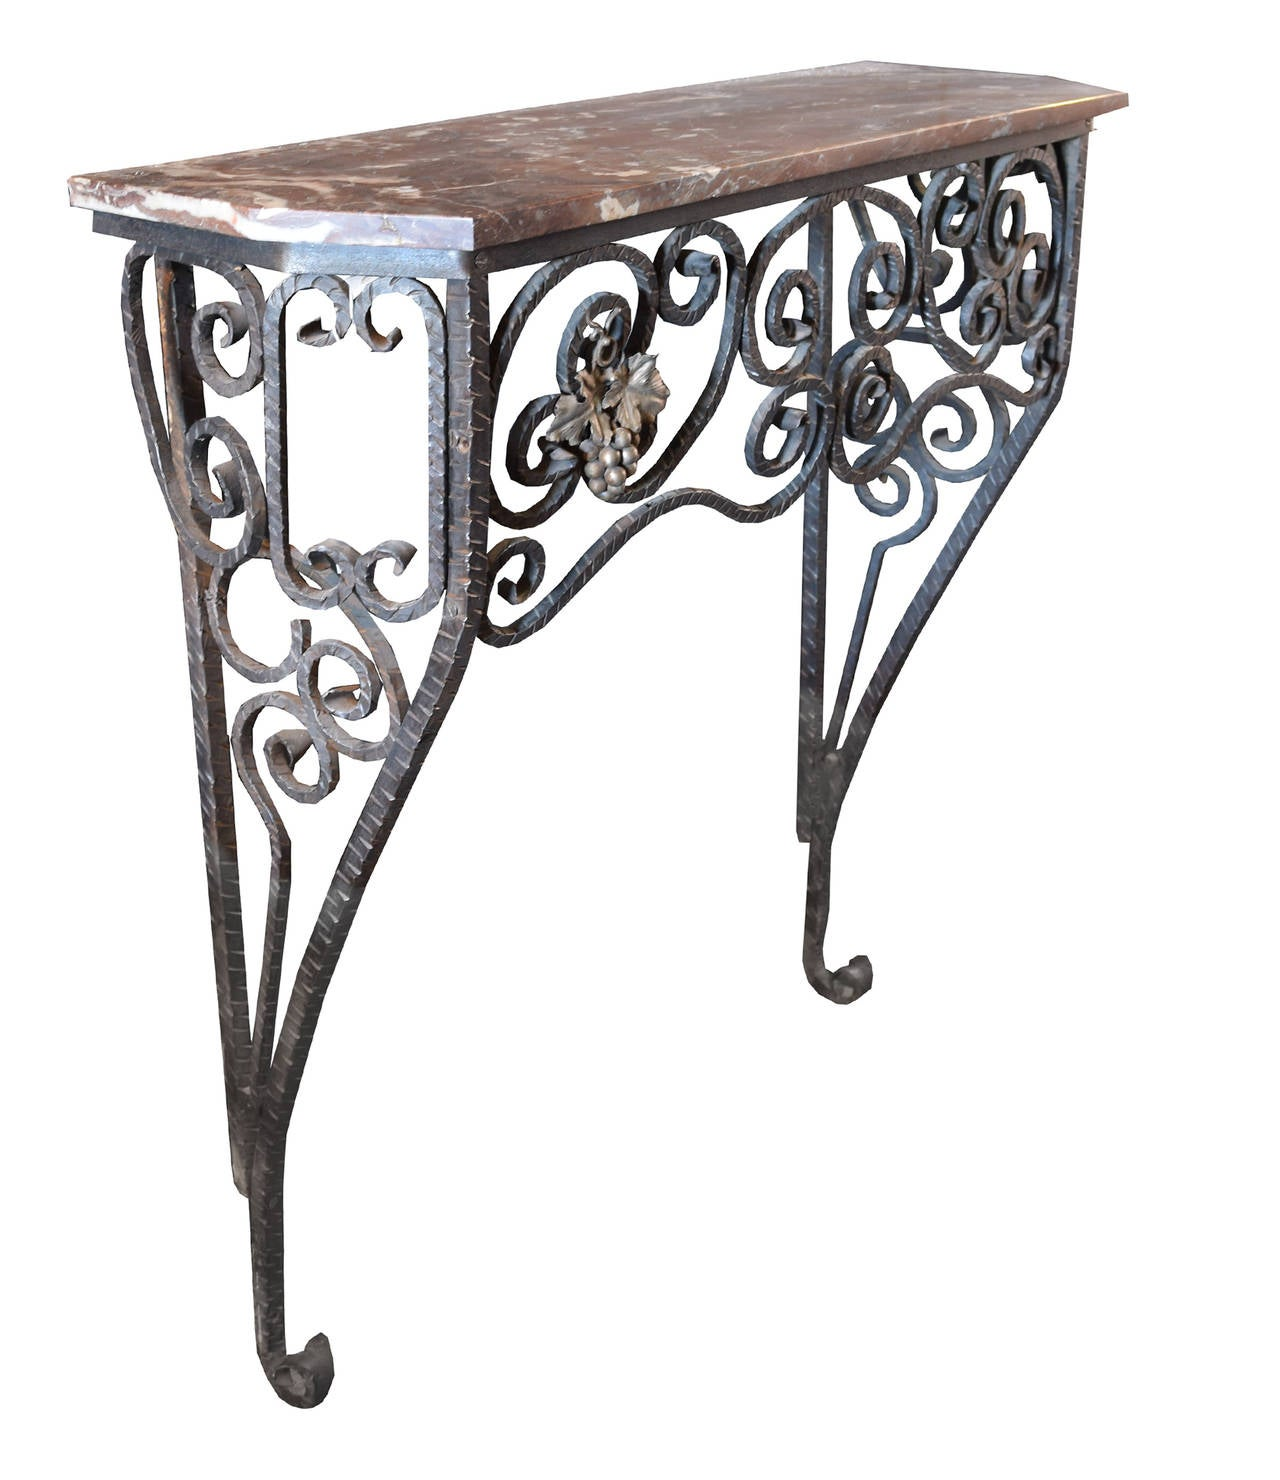 Fer forge console table with marble top for sale at 1stdibs for Table fer forge